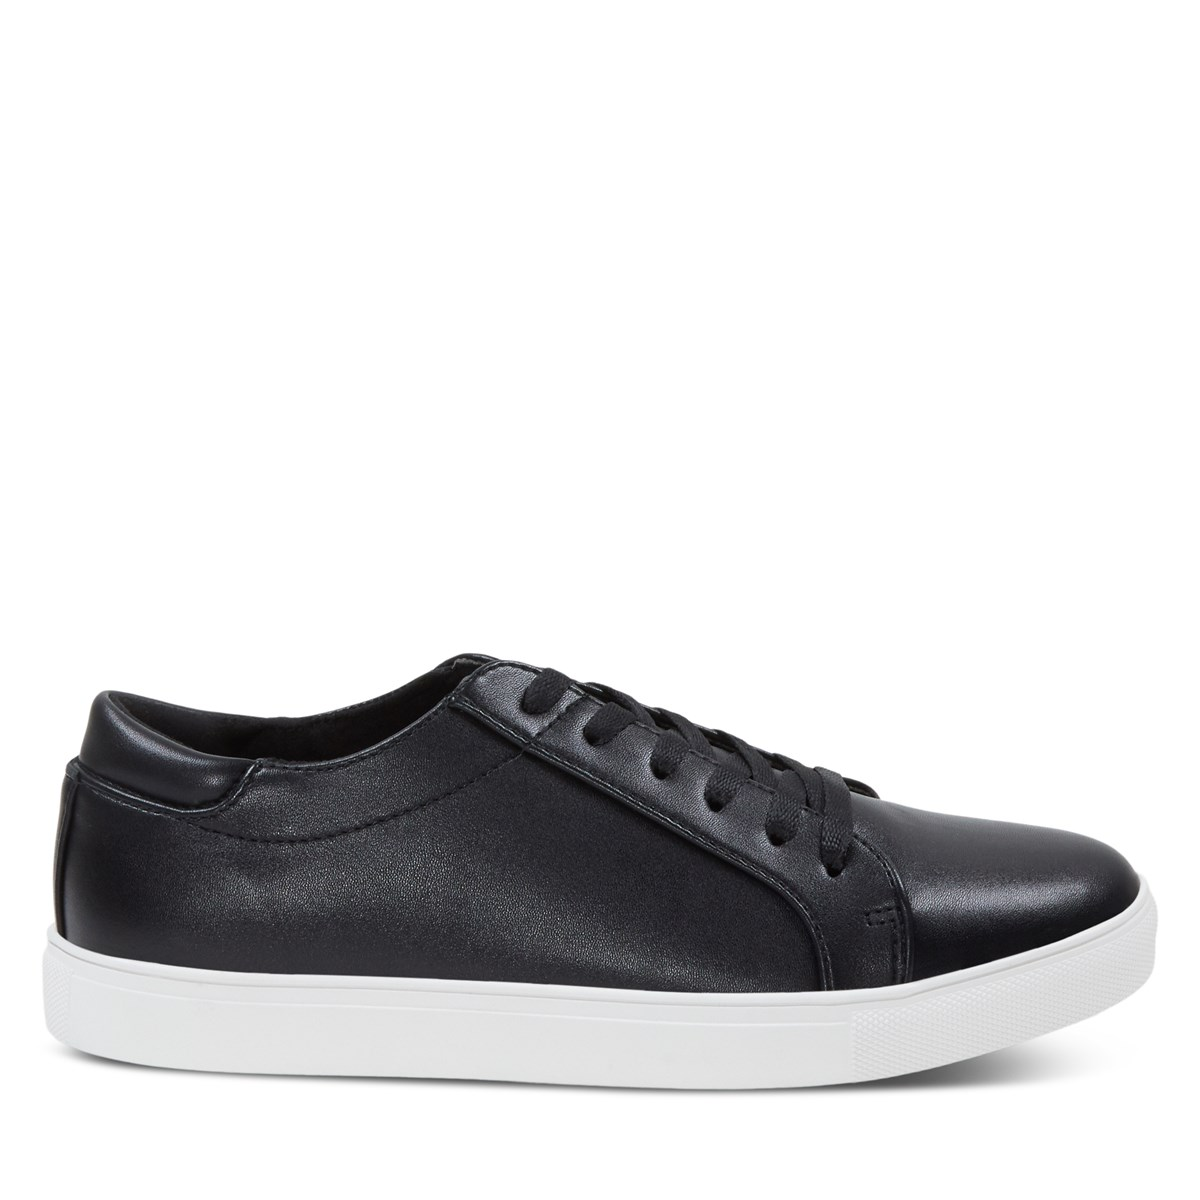 Men's KAM Sneakers in Black